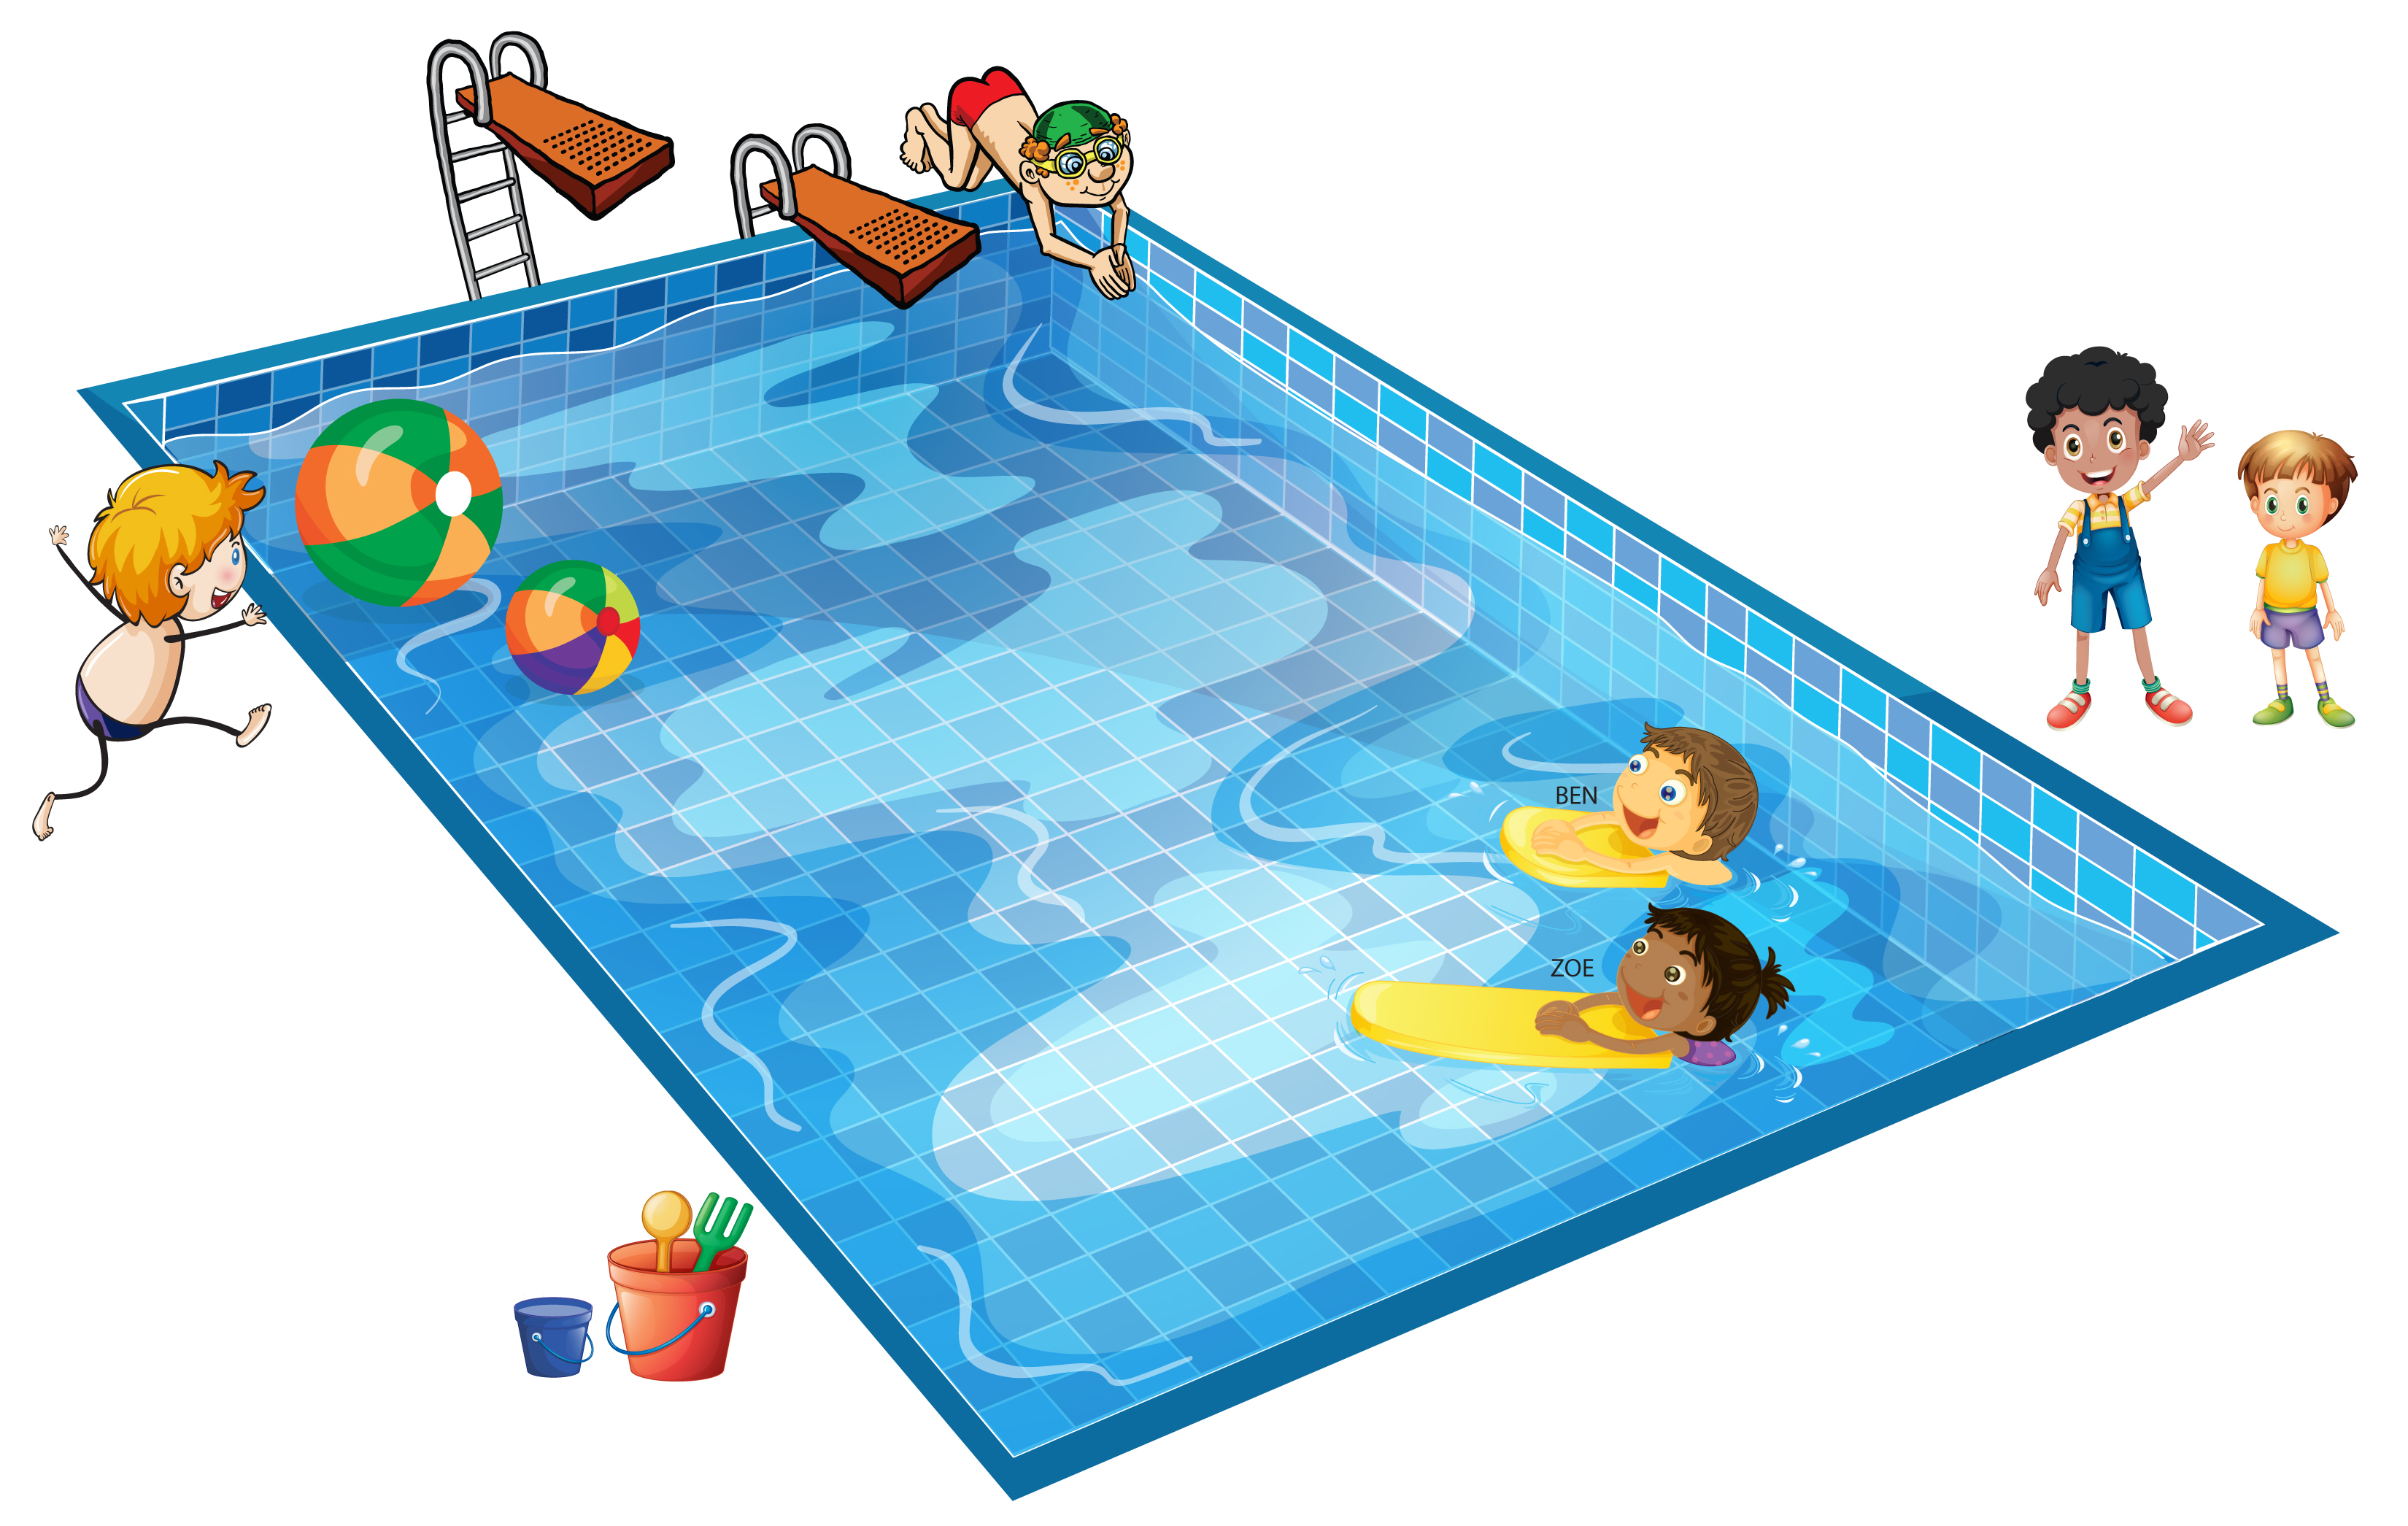 Hotel Icon Indoor Pool Clip Art At Clker-Hotel icon indoor pool clip art at clker vector clip art-8